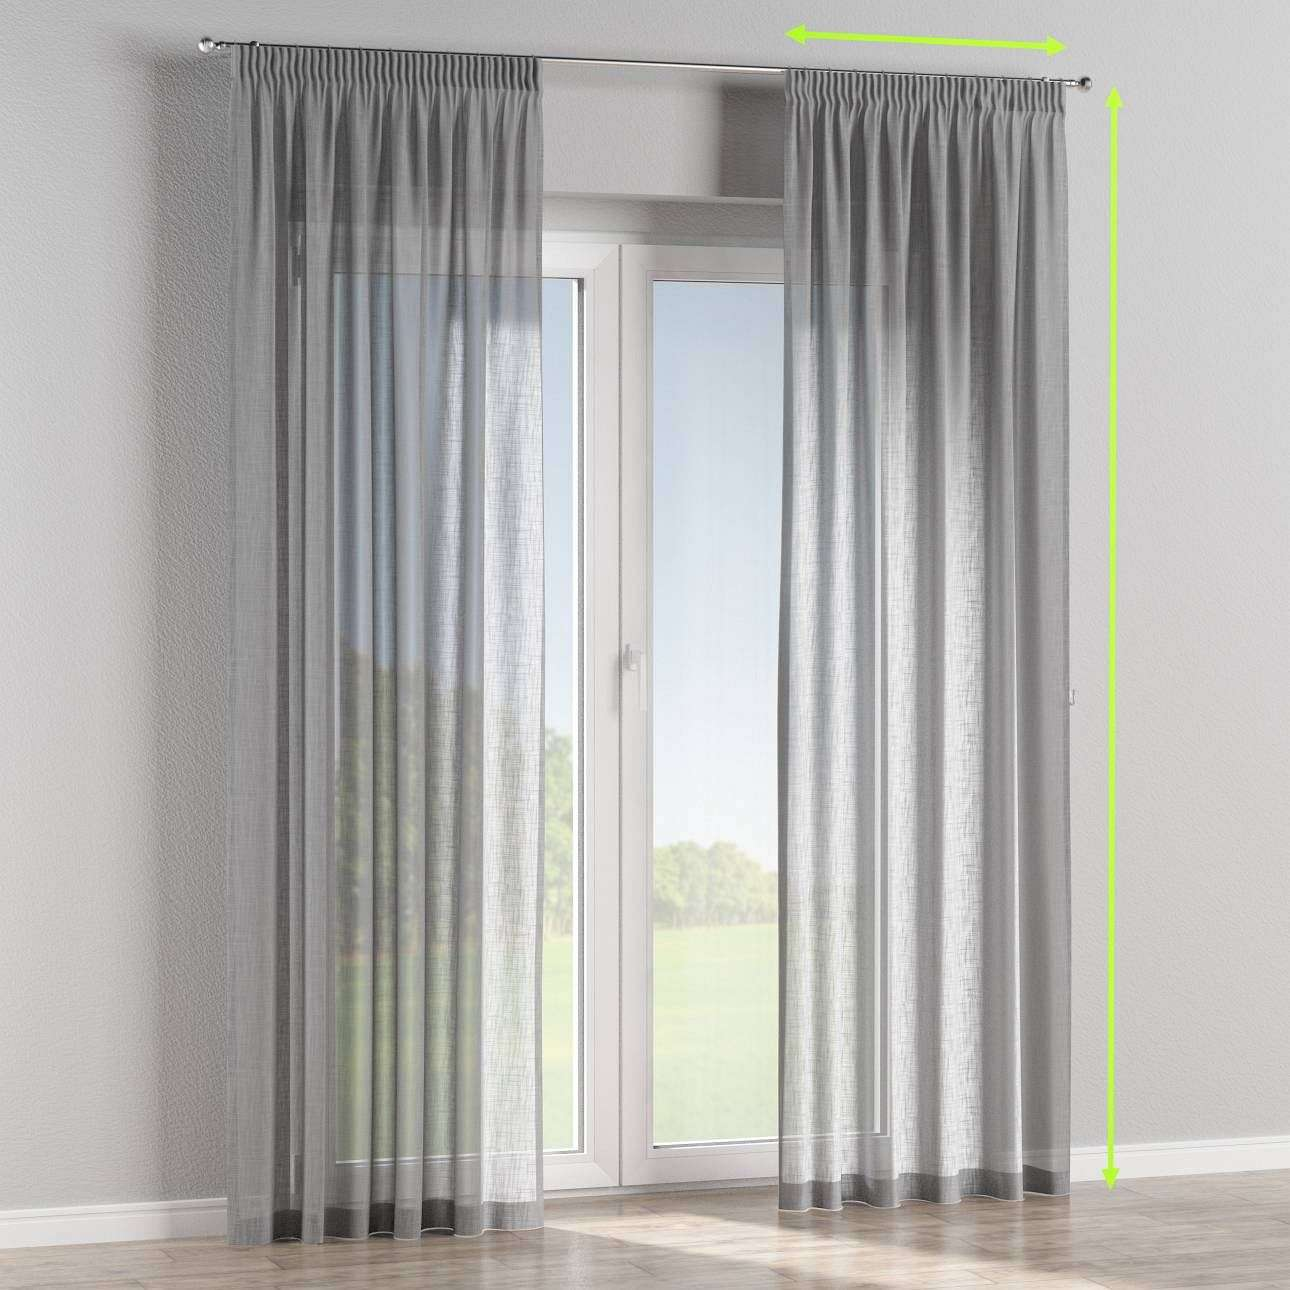 Pencil pleat curtains in collection Romantica, fabric: 128-08